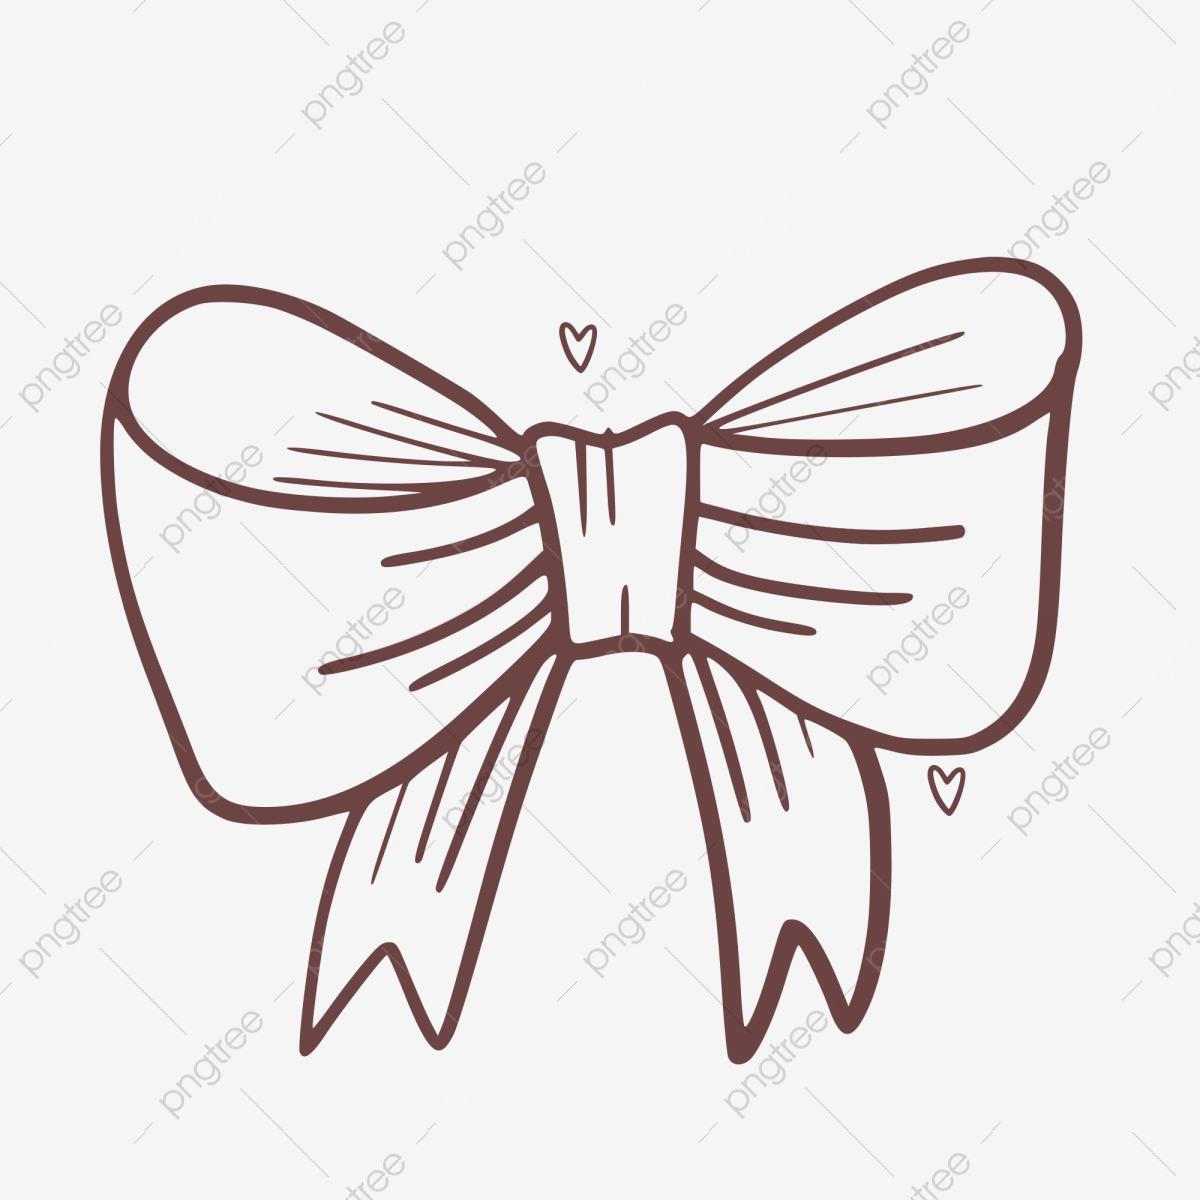 Doodle bow graffiti decoration. Bows clipart line drawing